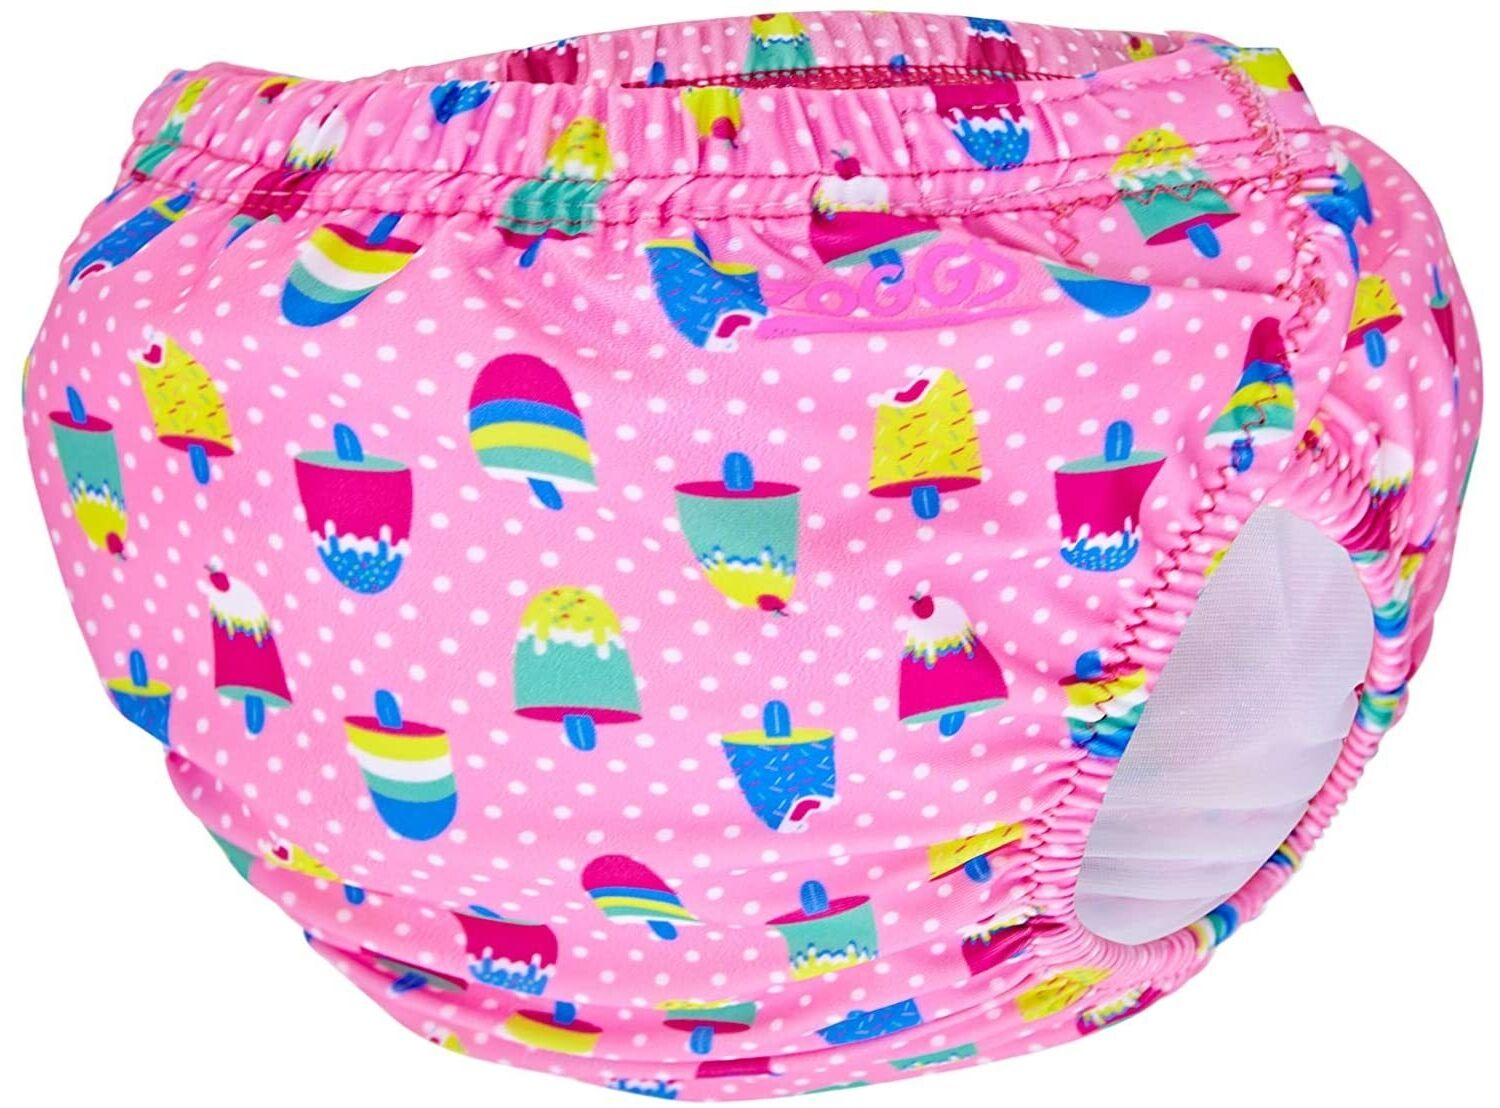 Zoggs Adjustable Reusable Baby Swim Nappy one size 3 to 24 mths - Choose your design - Ice Creams